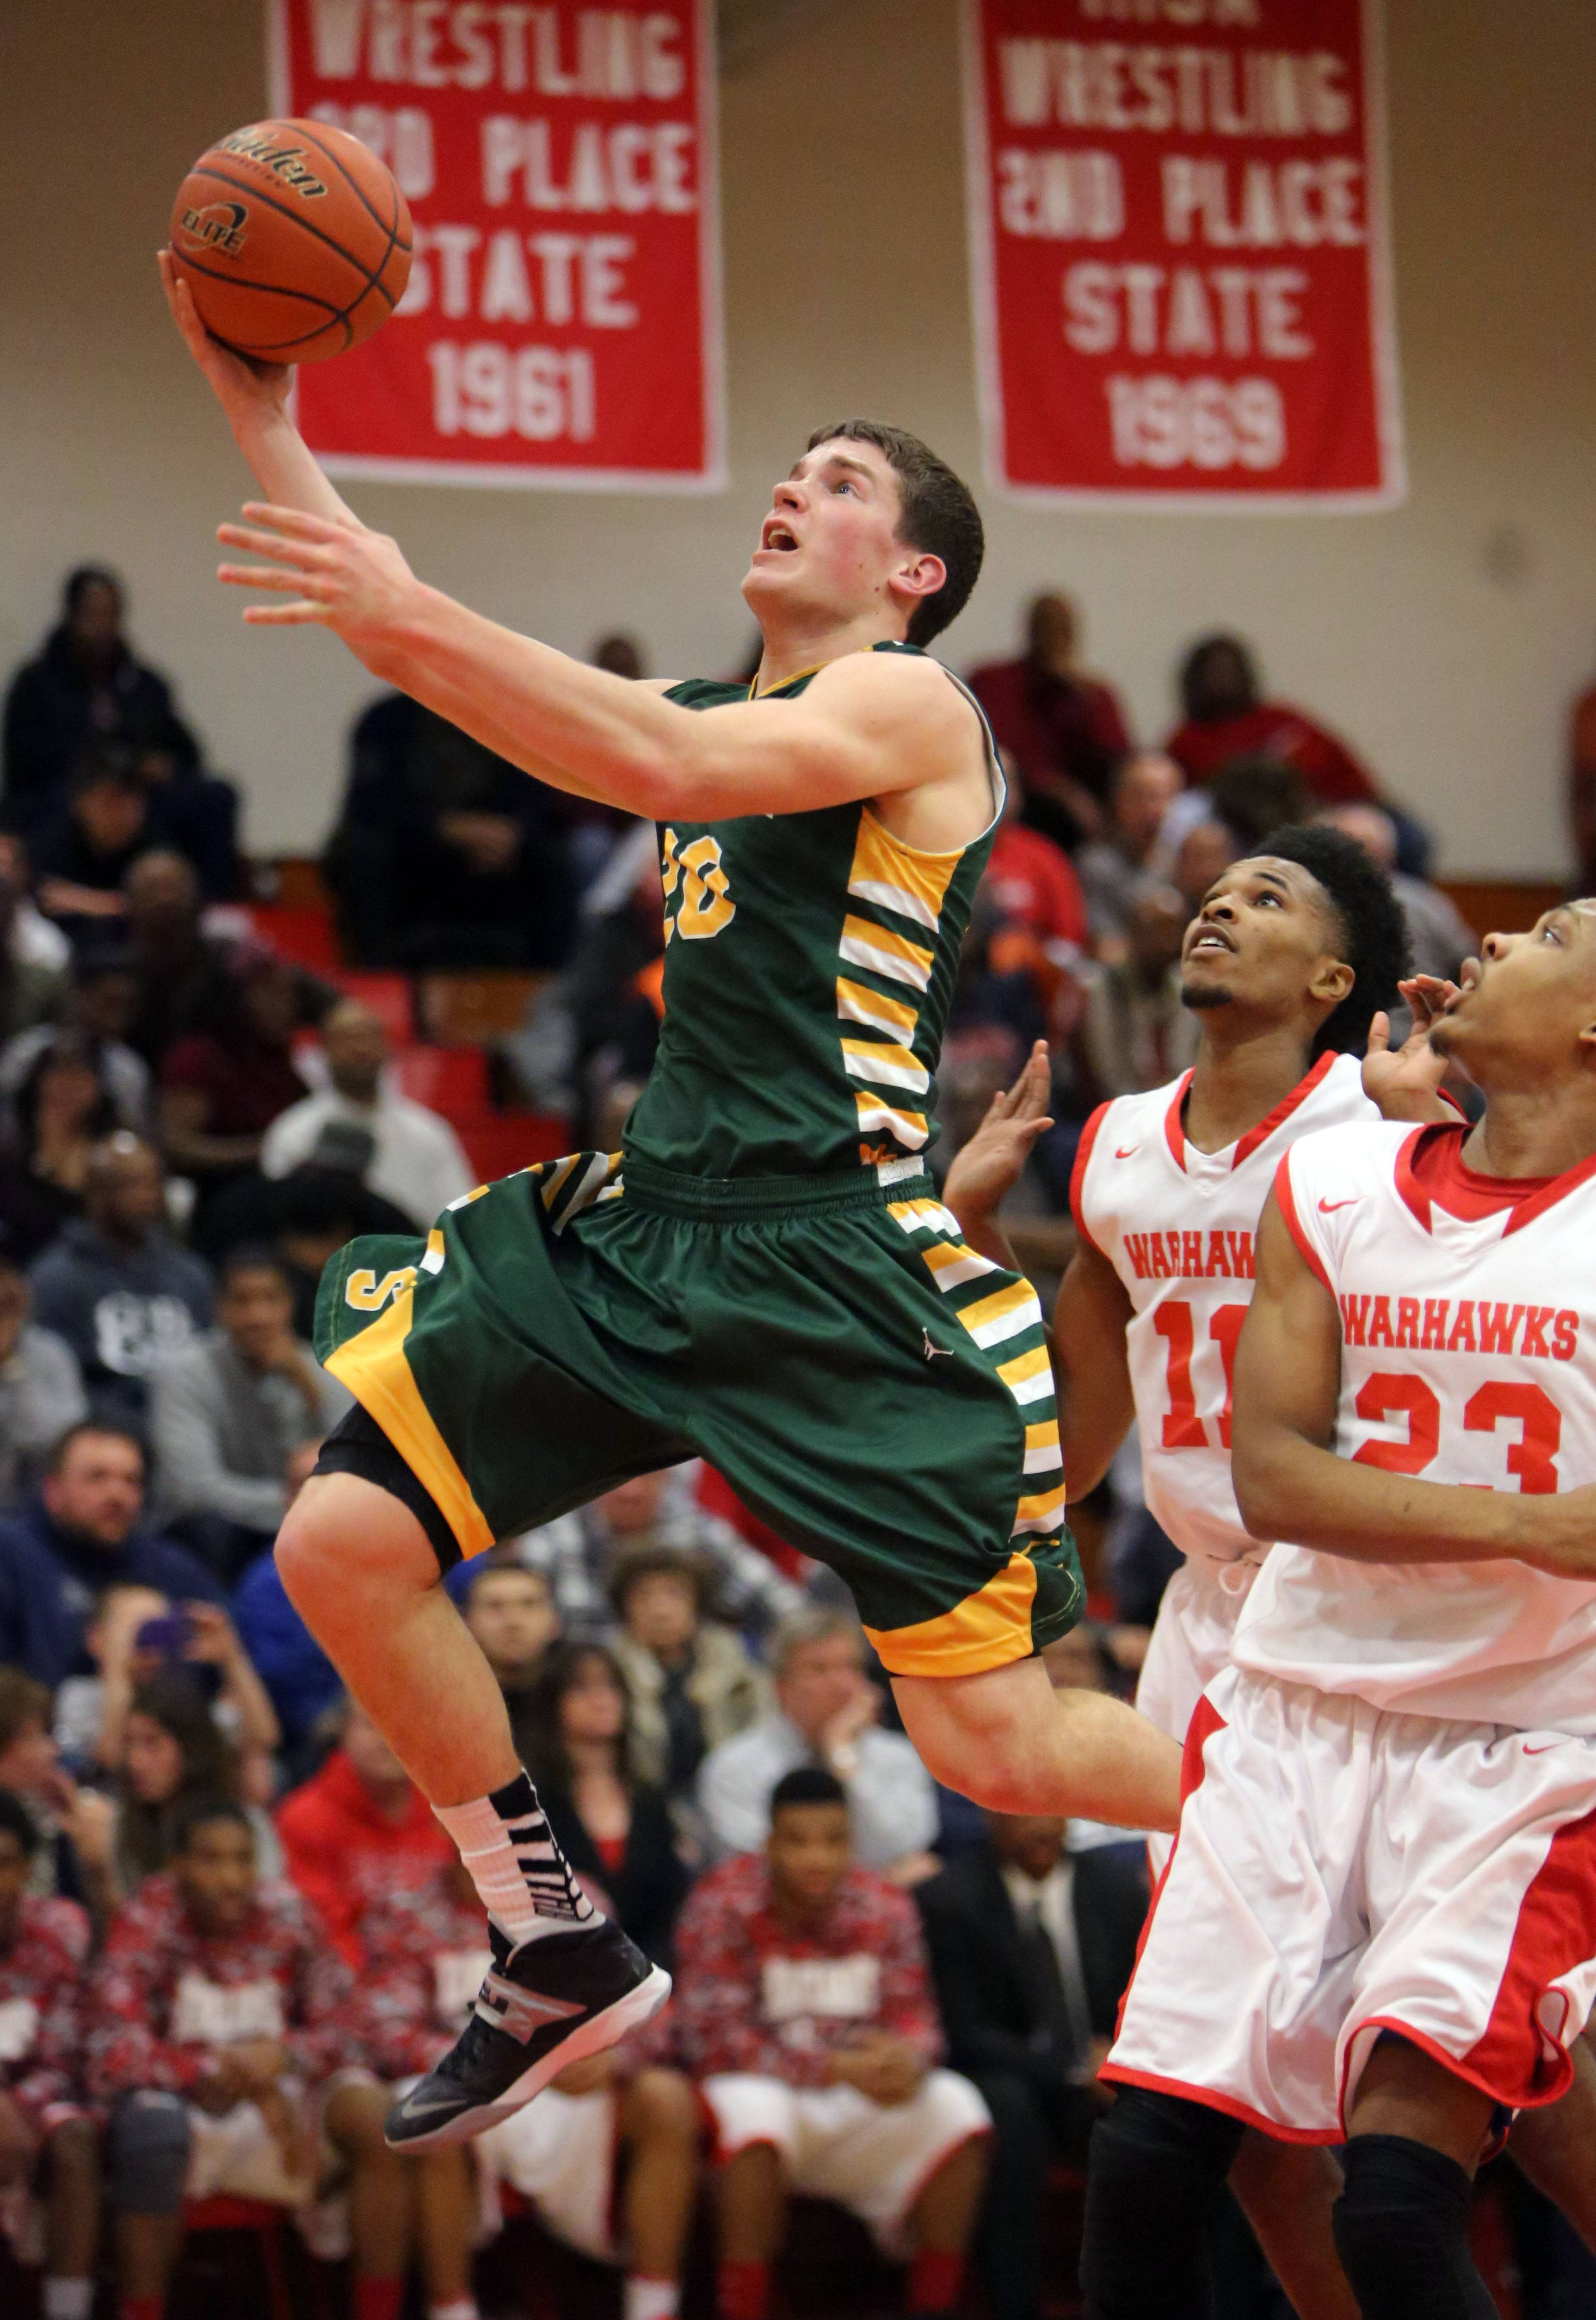 Stevenson's Matt Morrissey, left,  drives in past North Chicago's JayQuan McCloud and North Chicago's Jamero Shelton.